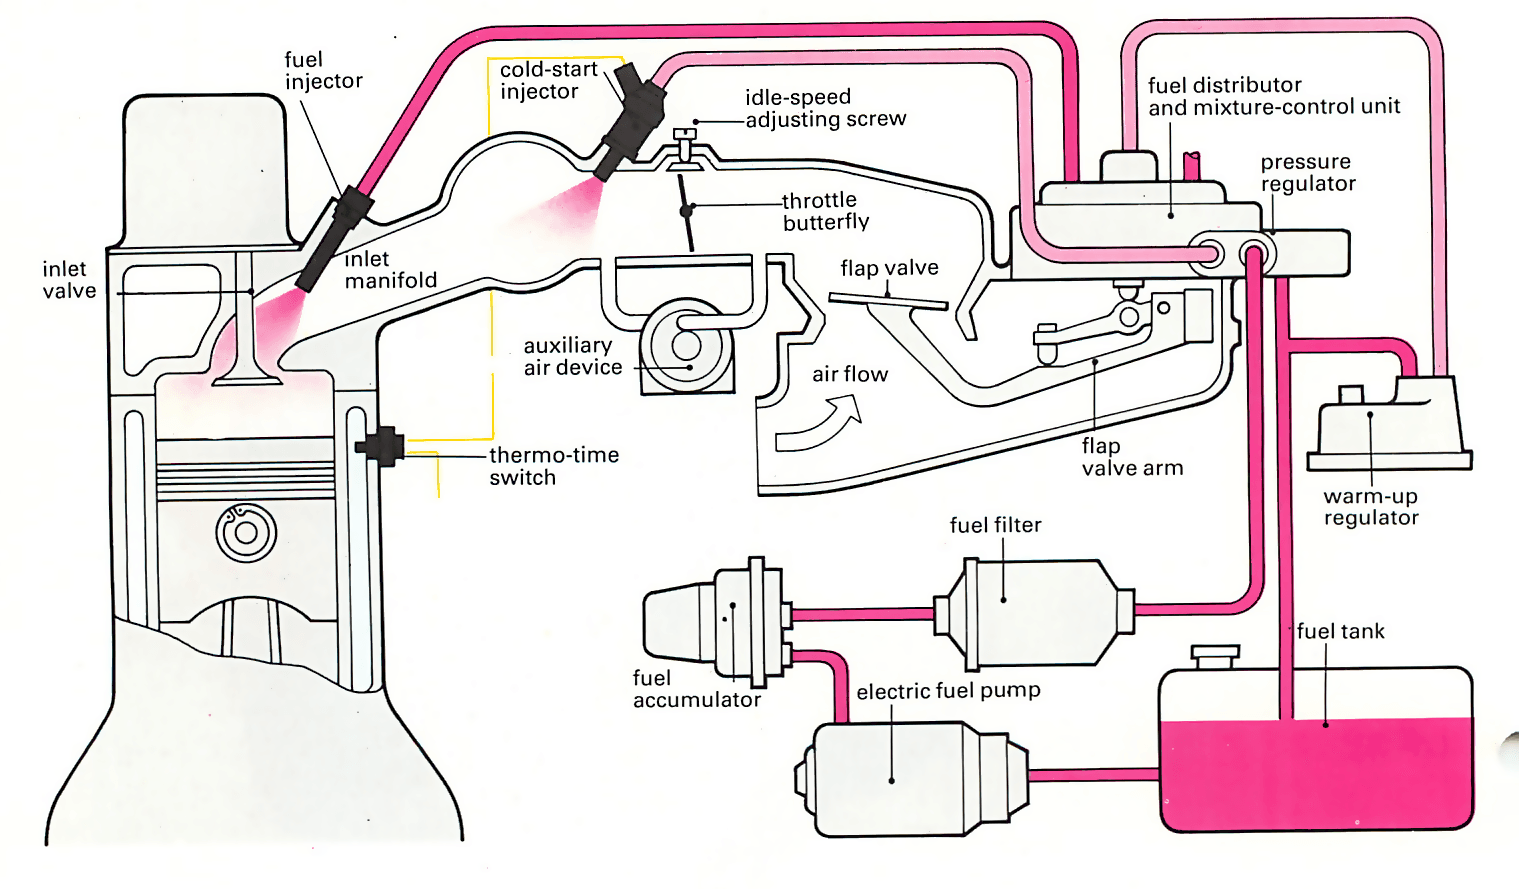 hight resolution of fuel injection engine diagram fuel injection engine diagram auto electrical wiring diagram fuel injection engine diagram mechanical box mod